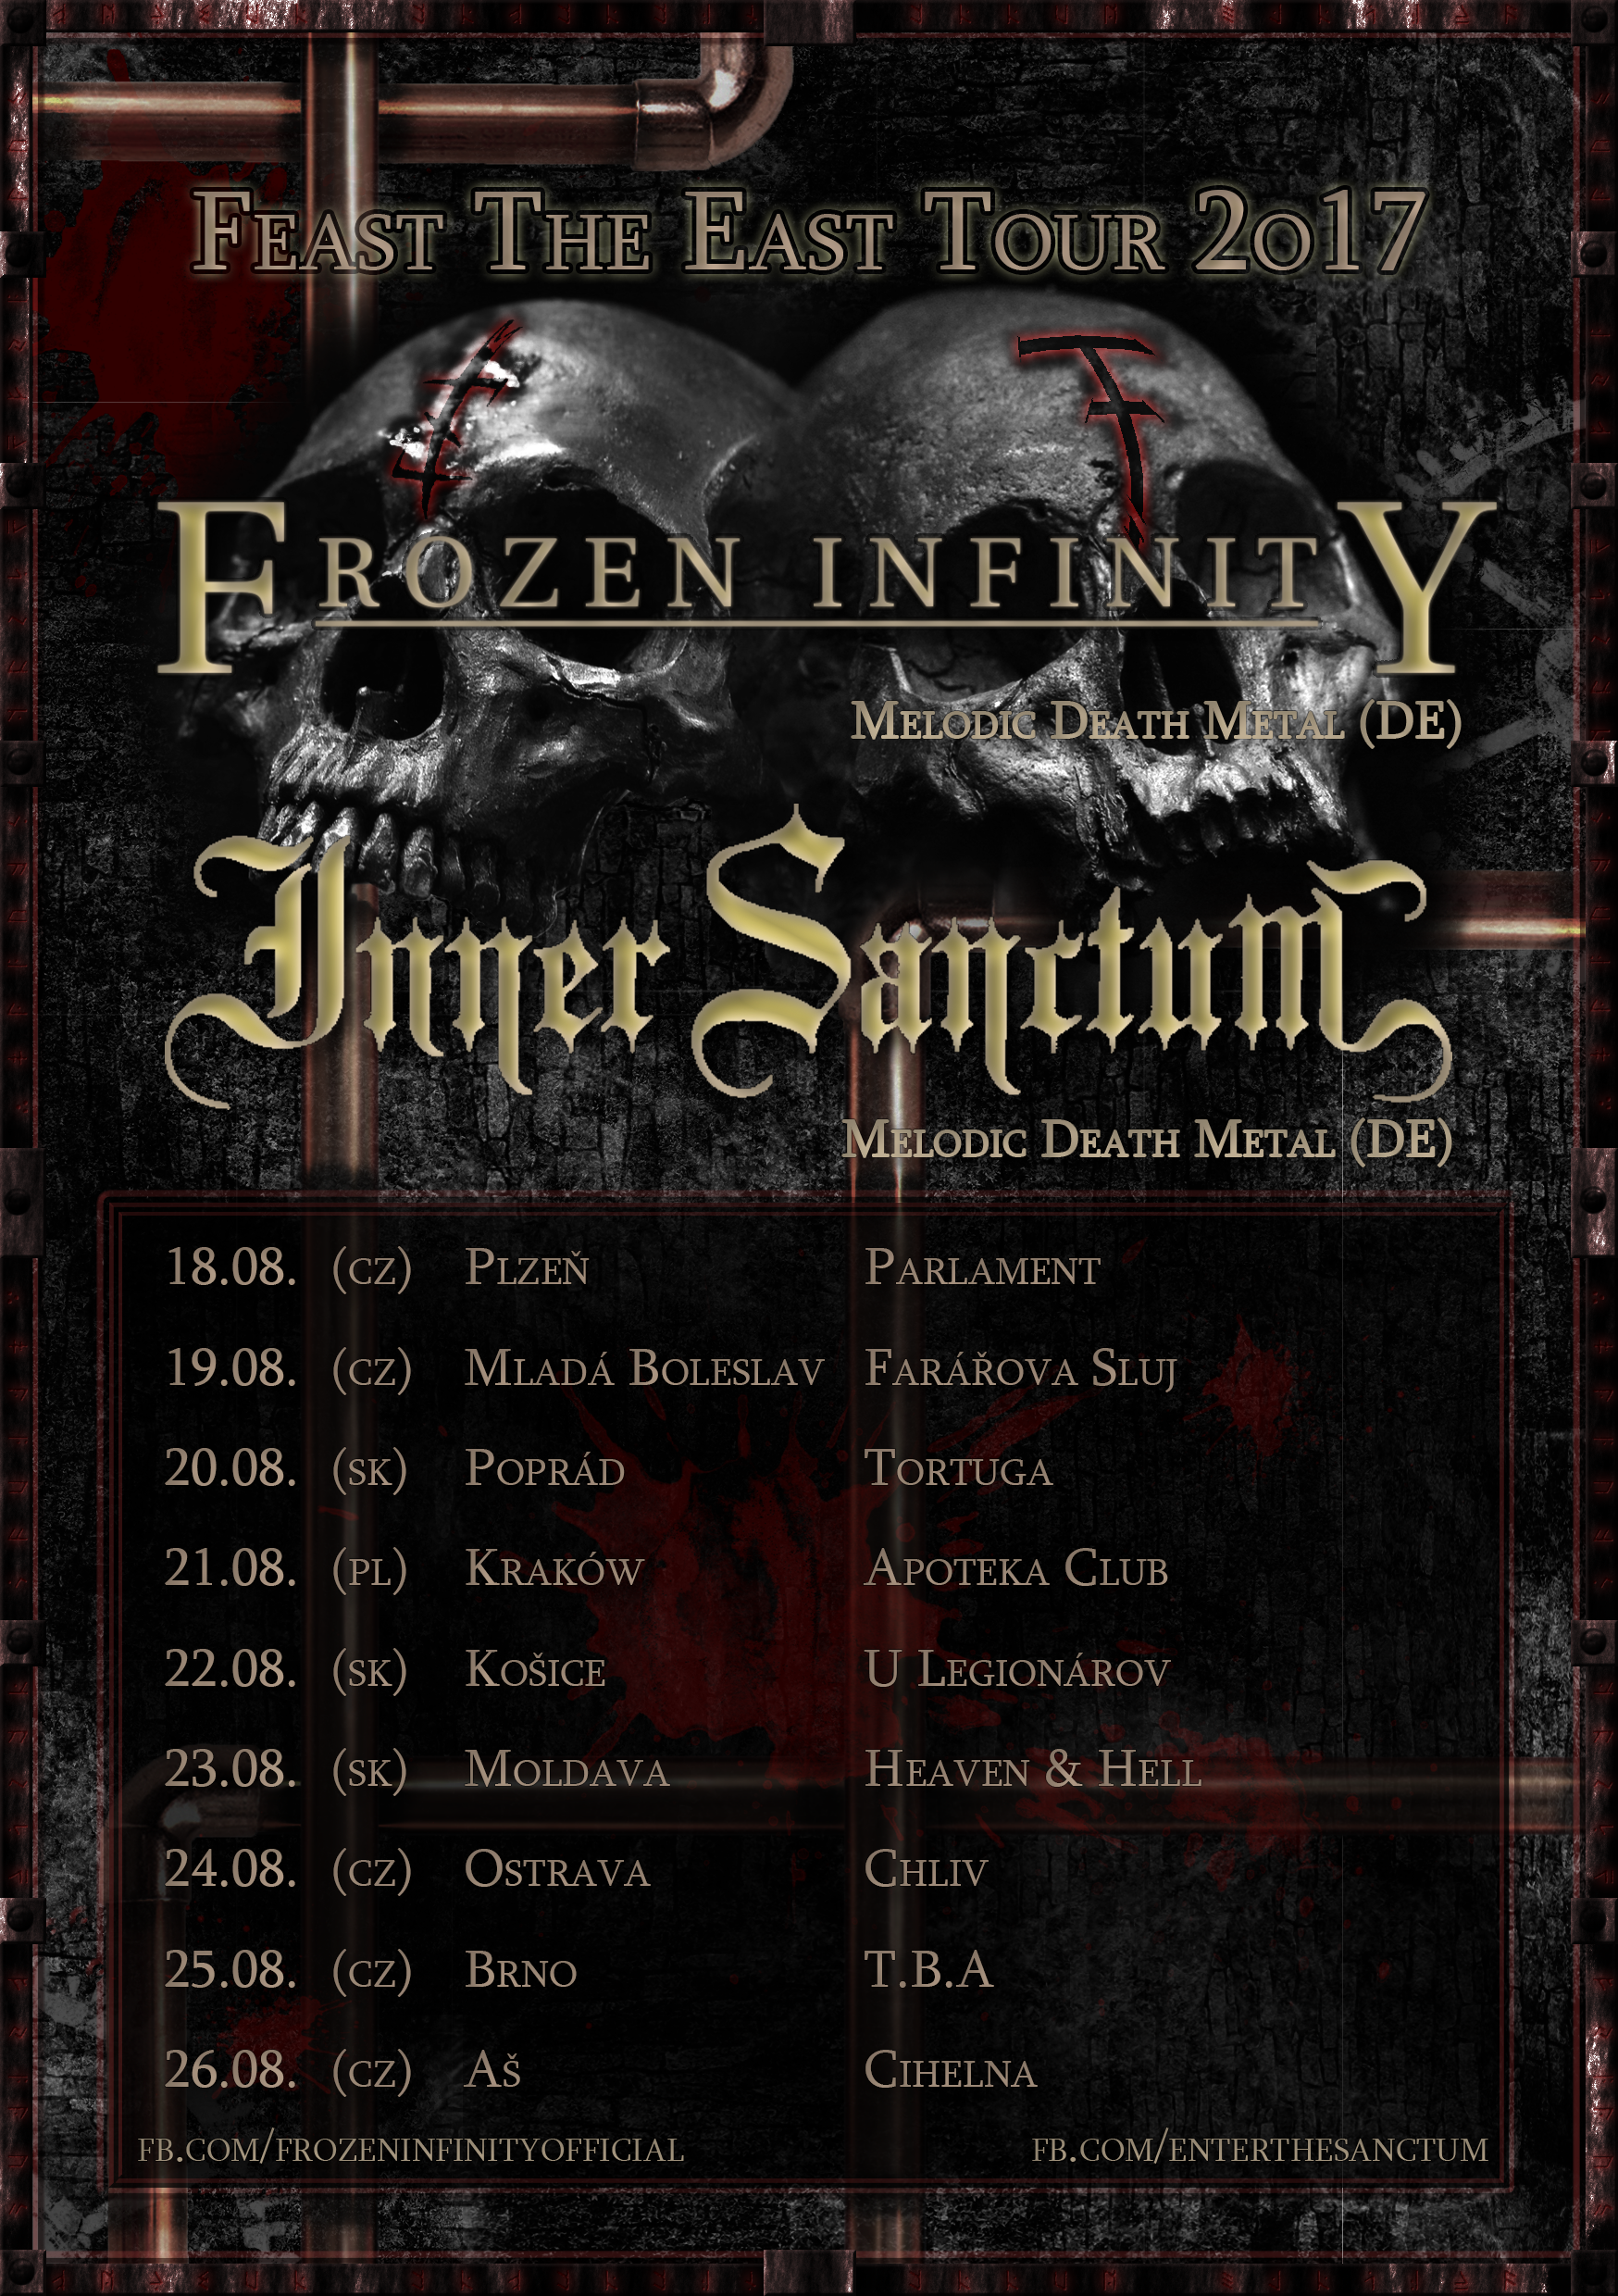 FEAST THE EAST TOUR 2017 – Frozen Infinity a Inner Sanctum zpět v ČR!